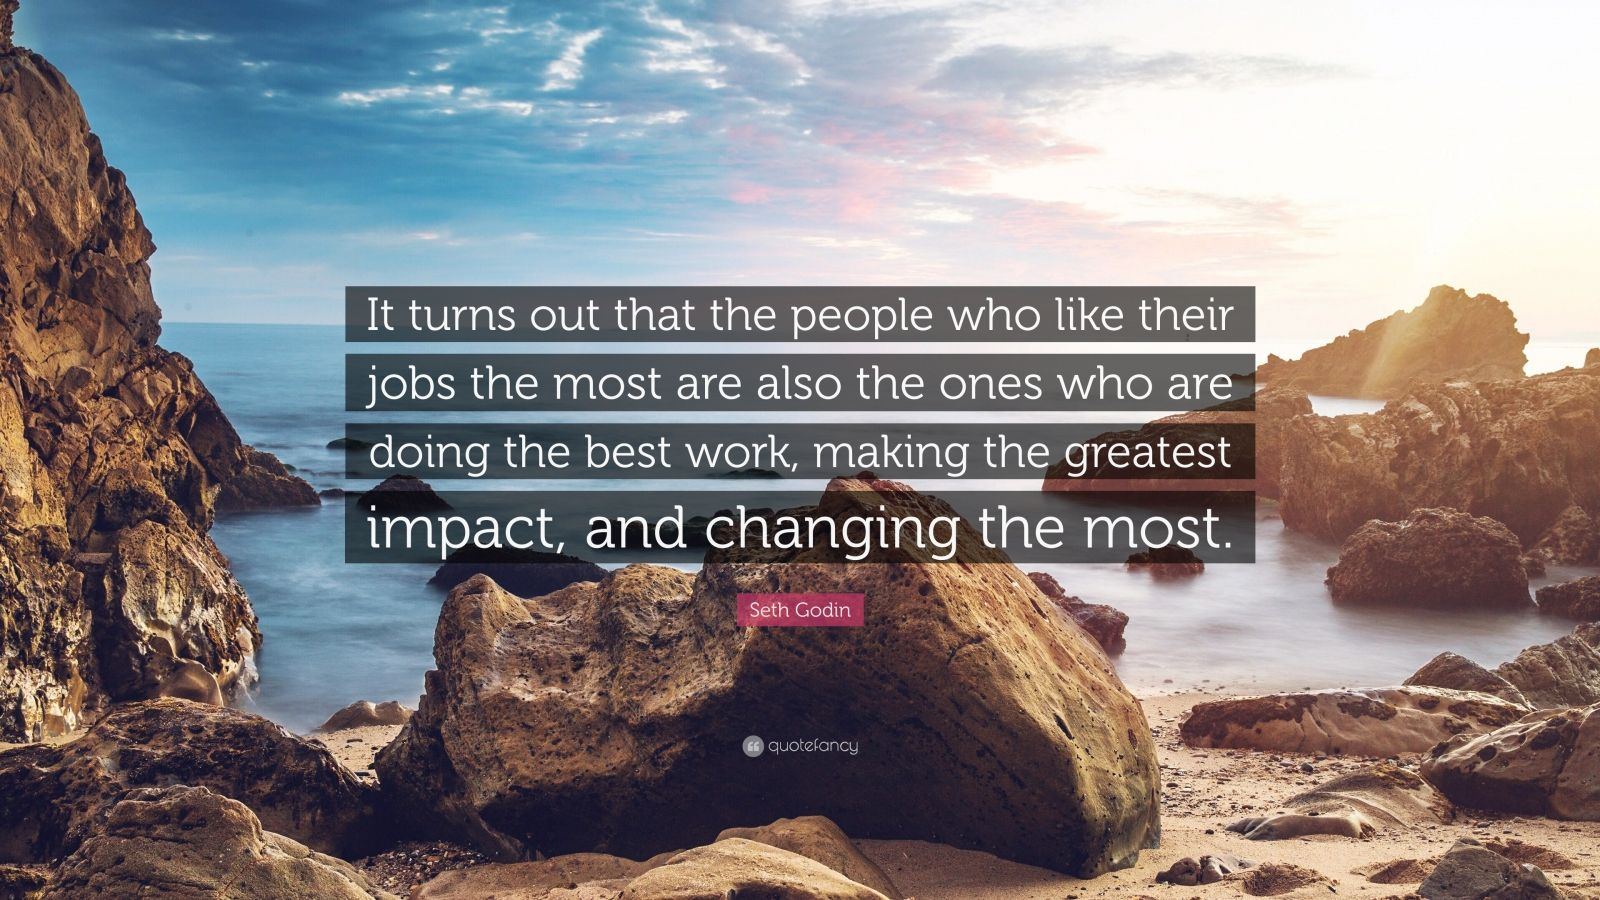 """Seth Godin Quote: """"It turns out that the people who like their jobs the most are also the ones who are doing the best work, making the greatest impact, and changing the most."""""""